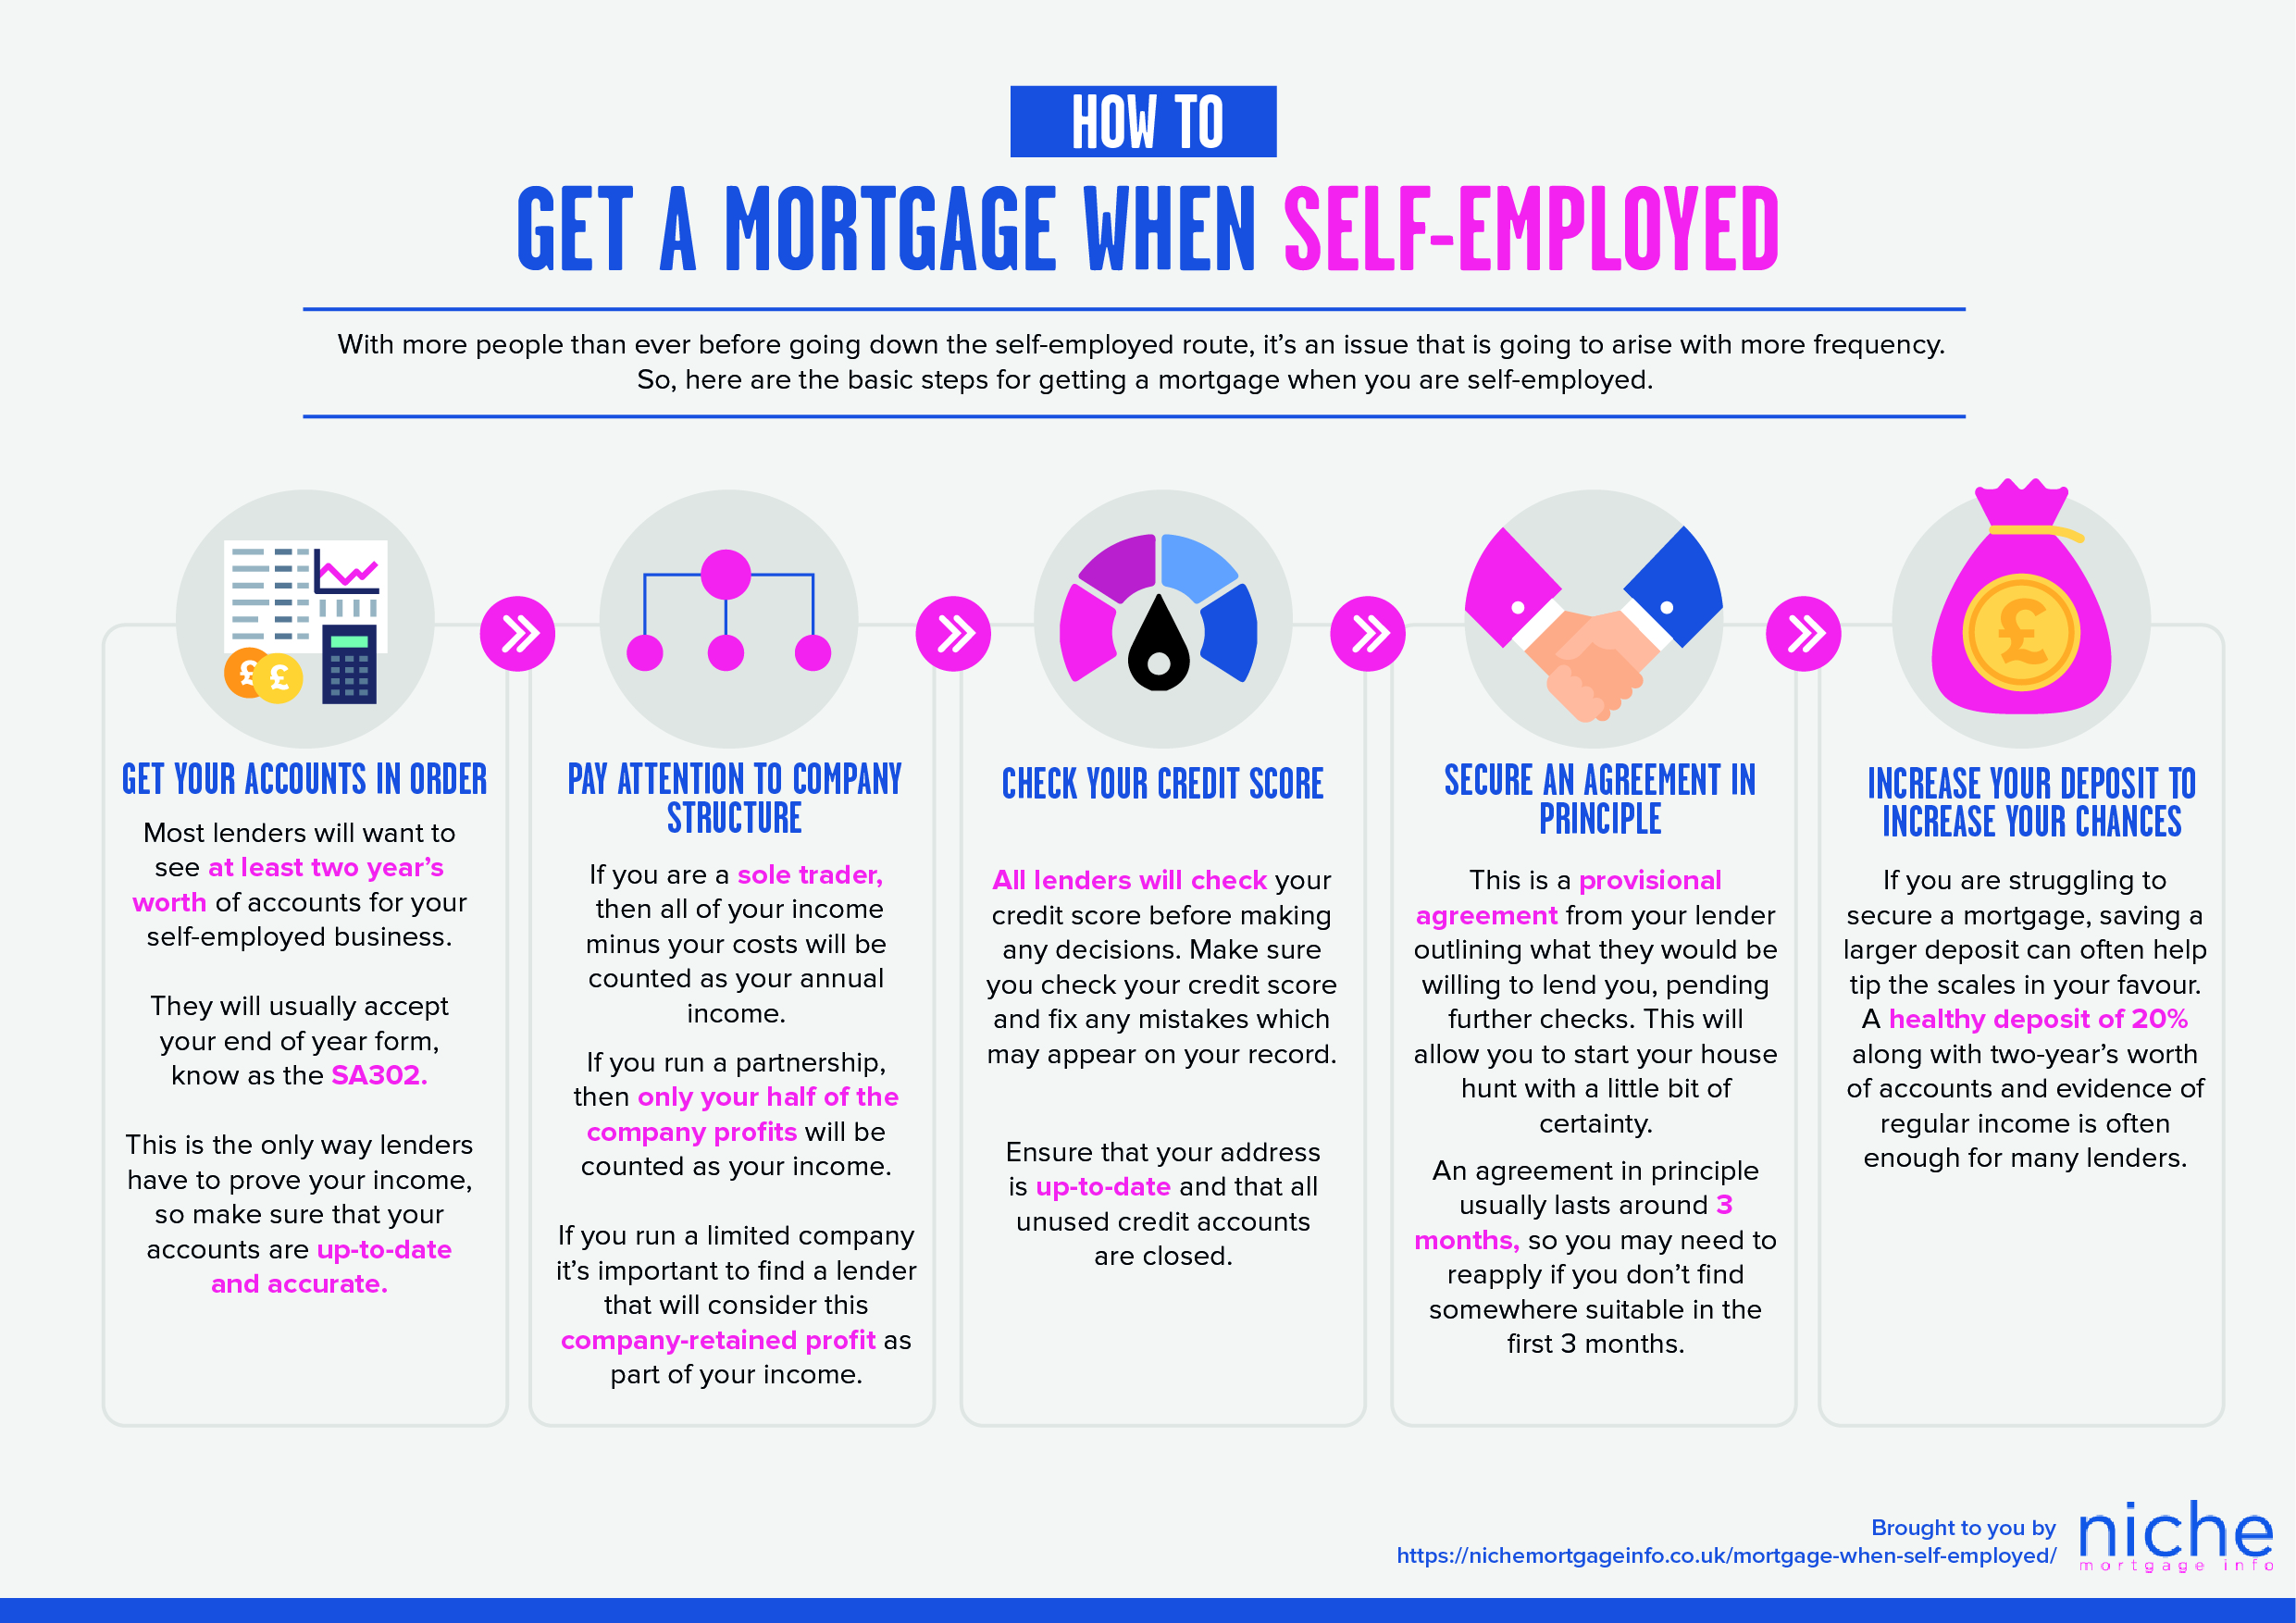 Mortgage as self-employed